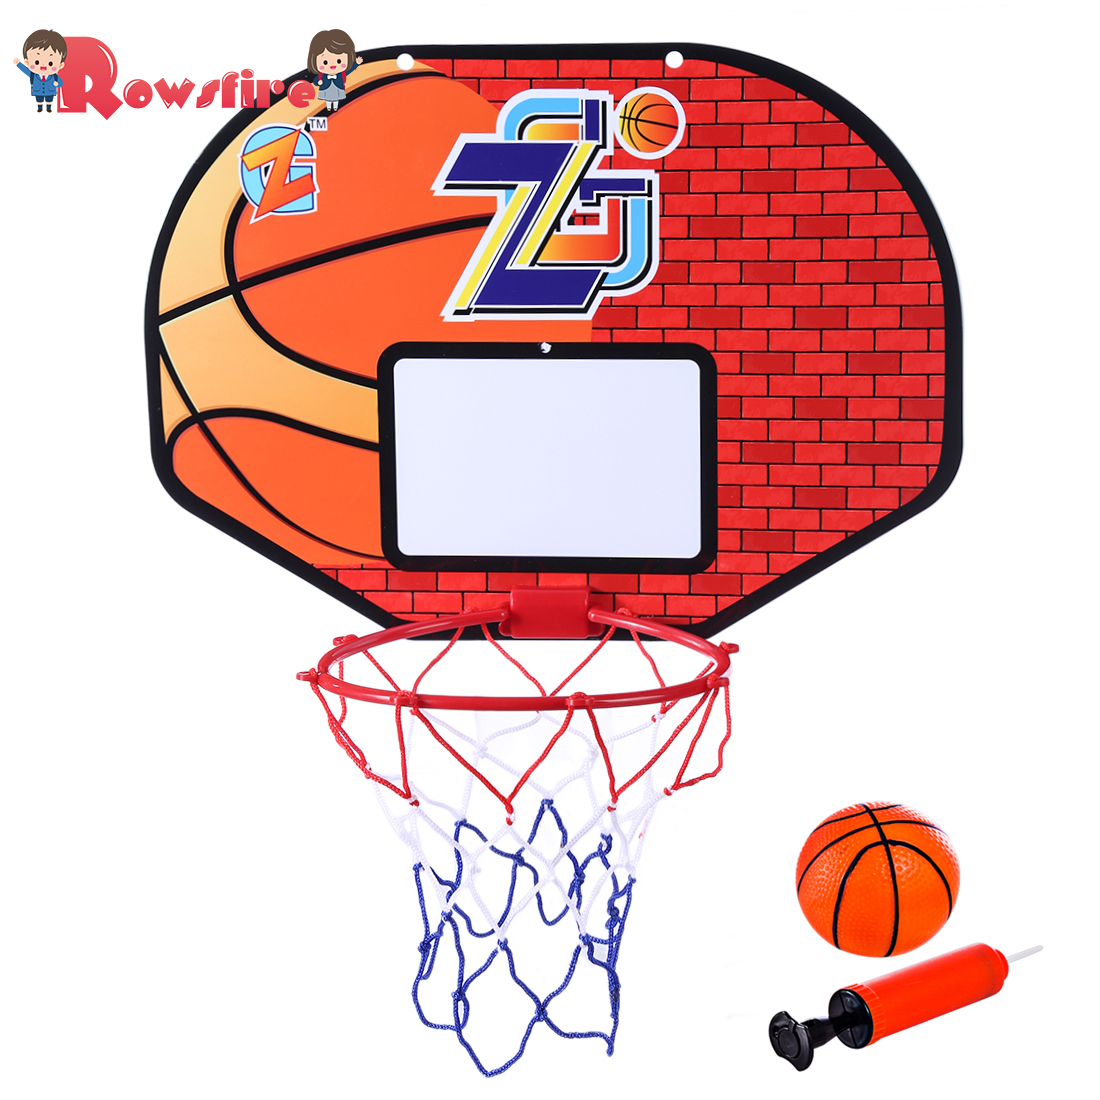 Rowsfire  Children Outdoor Sports Equipment Fitness Basketball Board For Outdoor Toy - ZG270-3